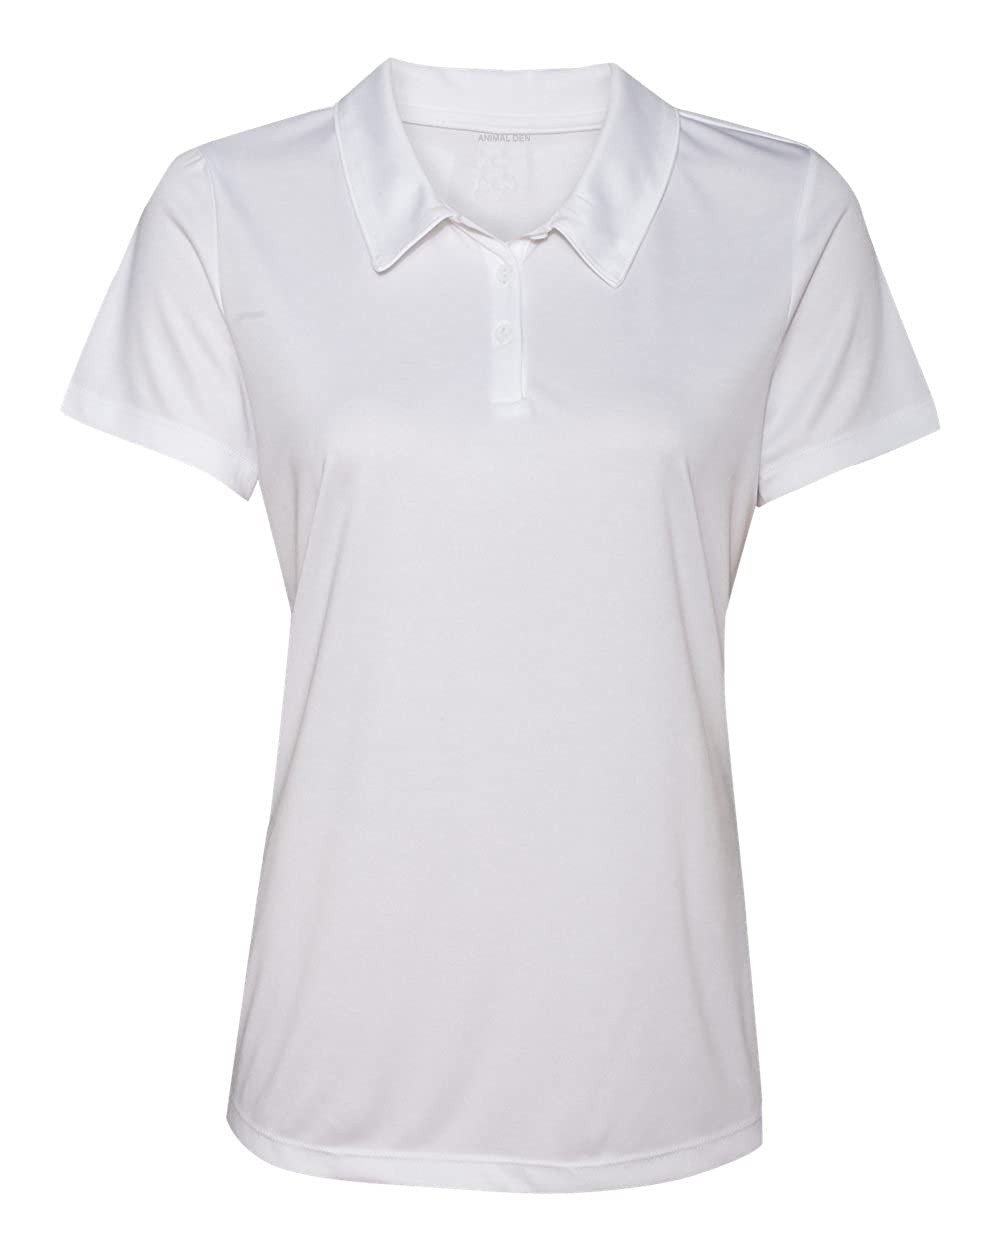 a9575613 Ladies' Performance 3-Button Golf Polo in 20 Colors - Sizes XS-3XL .  Dry-wicking 100% polyester interlock . The durable Silky Touch Performance  Polo wicks ...